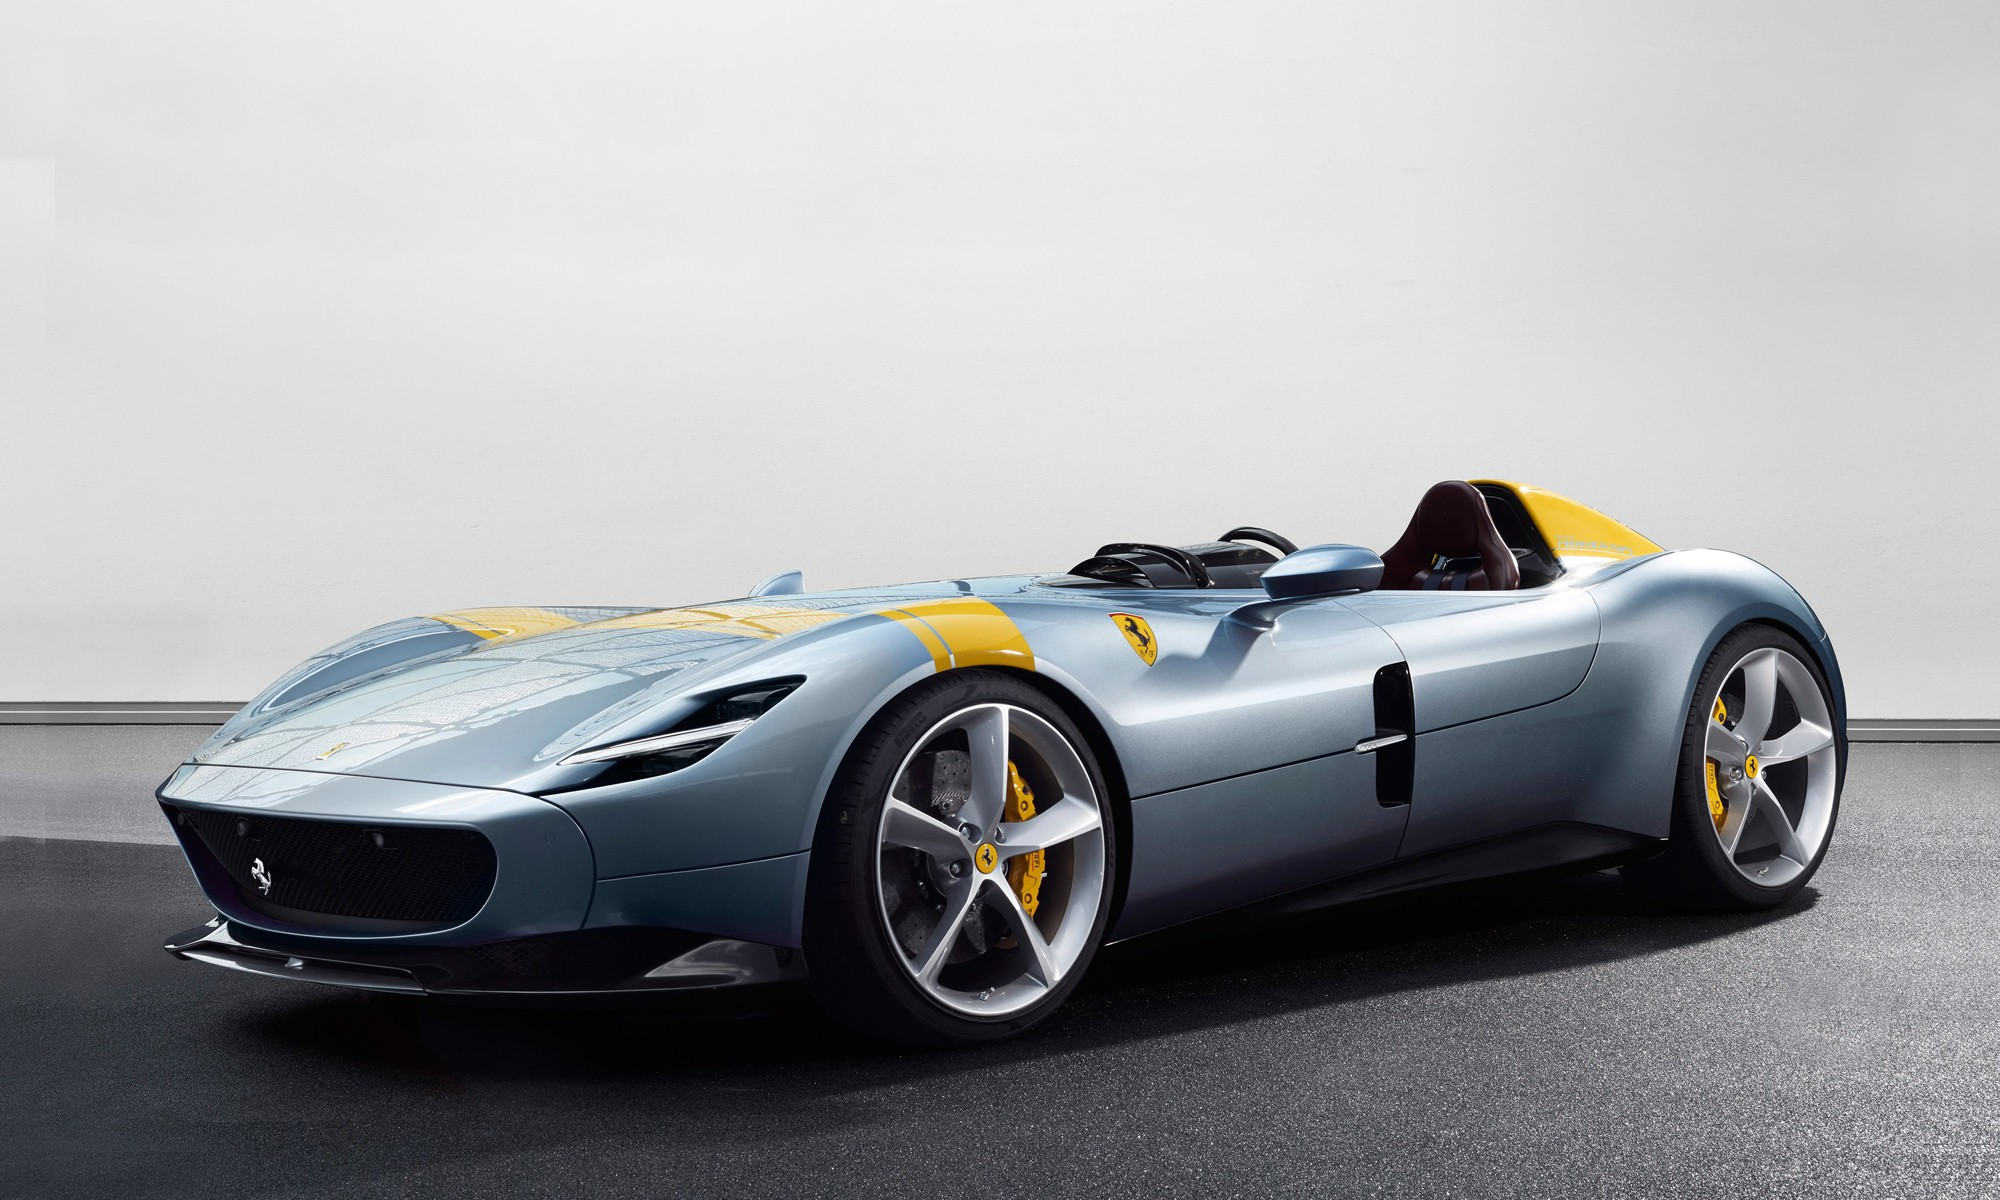 Ferrari Monza SP1 is selfish driving pleasures personified